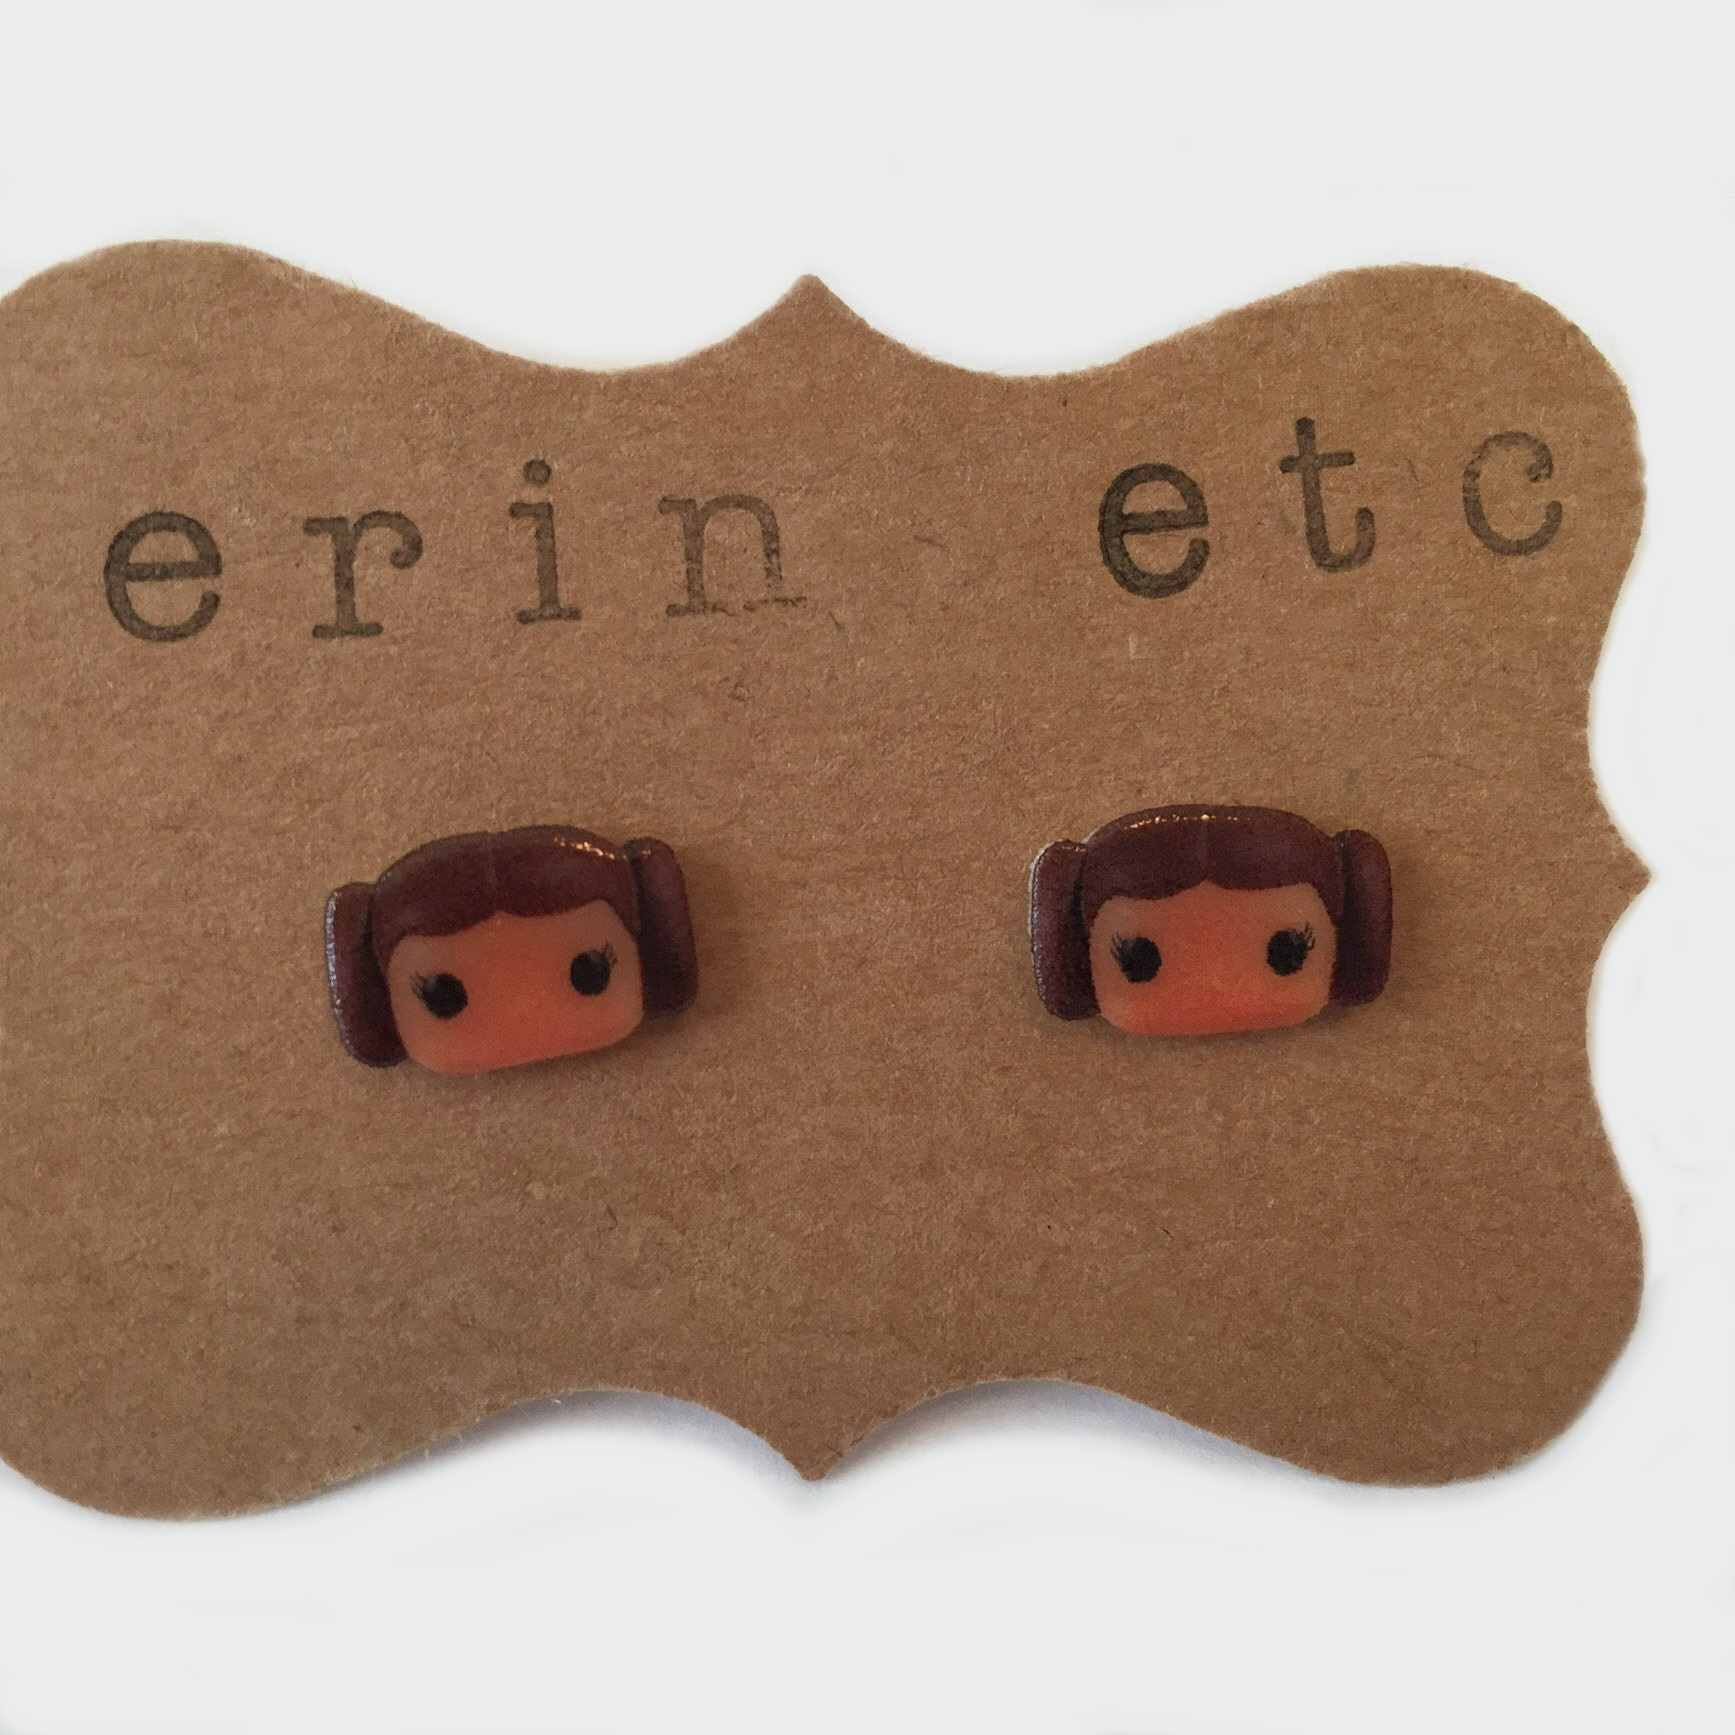 Star Wars Princess Leia Stud Earrings by Erin Etc on Etsy